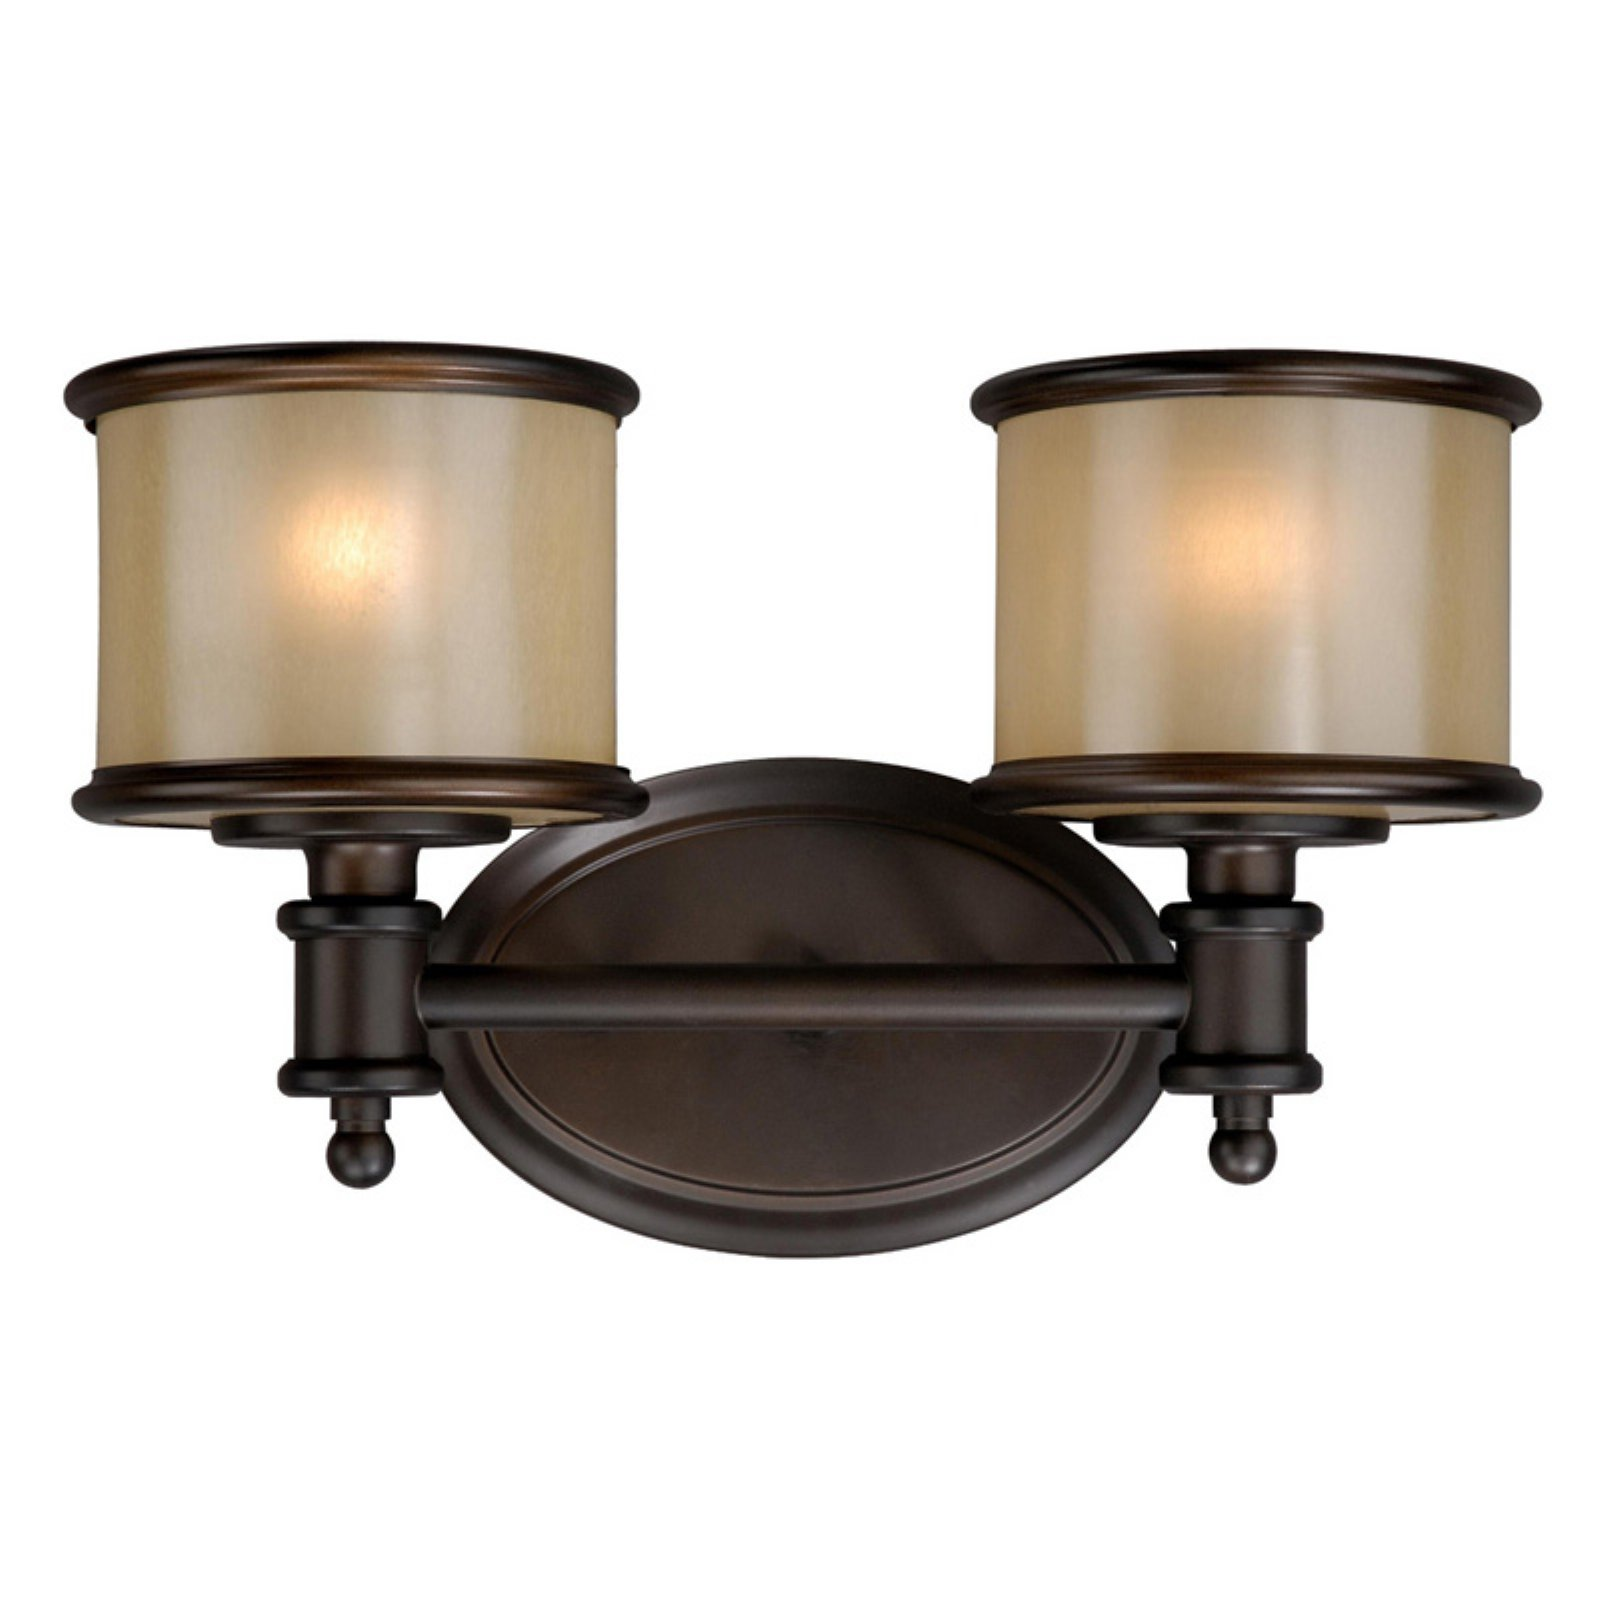 Vaxcel Carlisle CR-VLU002 2 Light Bathroom Vanity Light